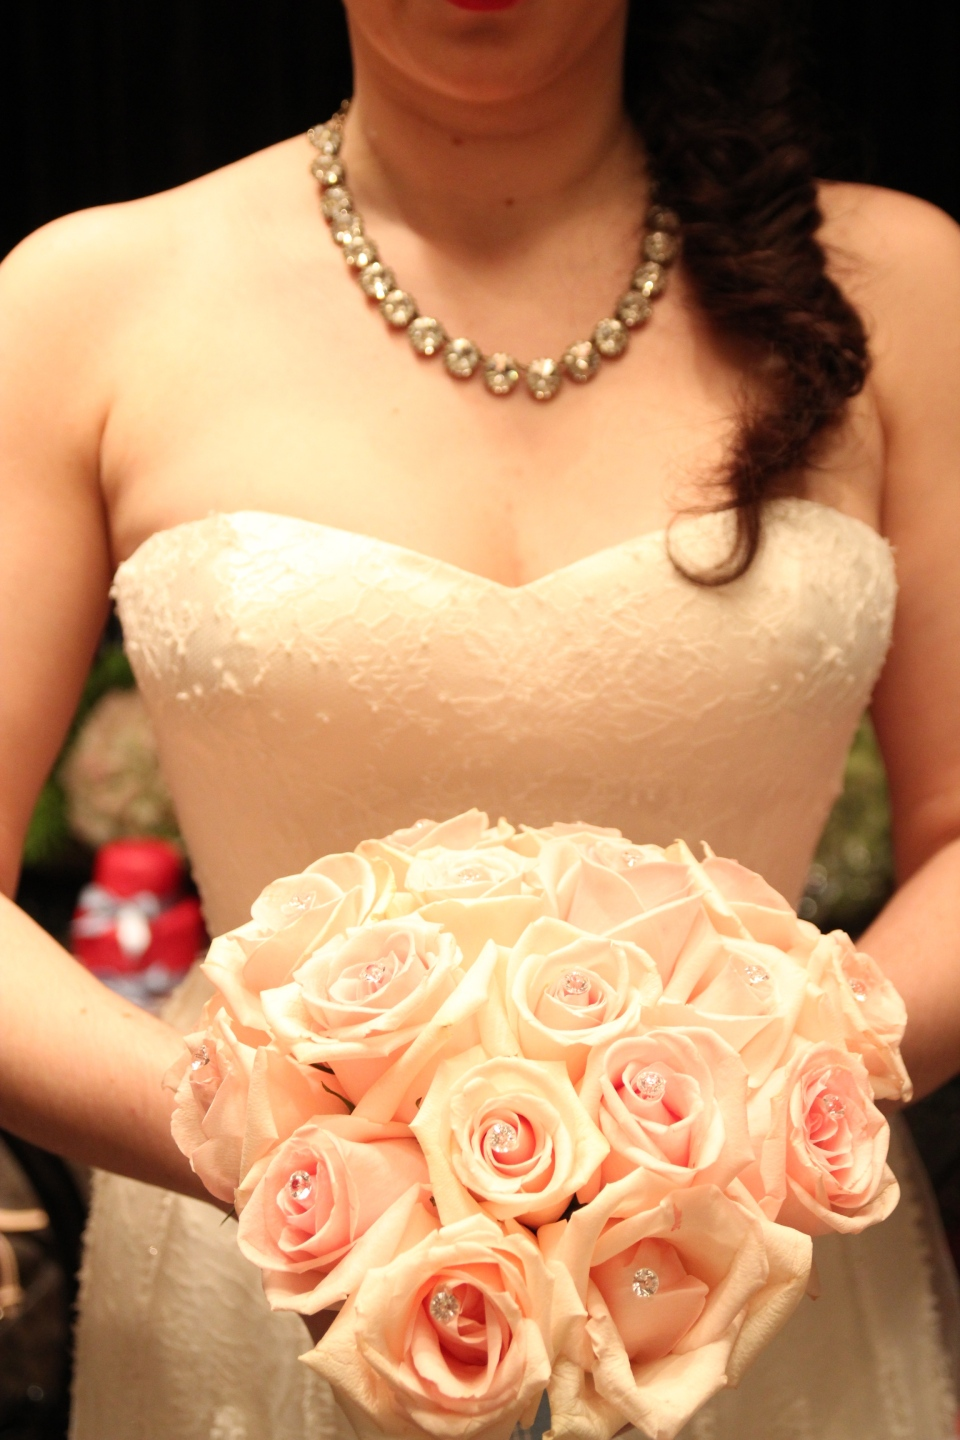 Blush rose bouquet with crystal accents for the ceremony.